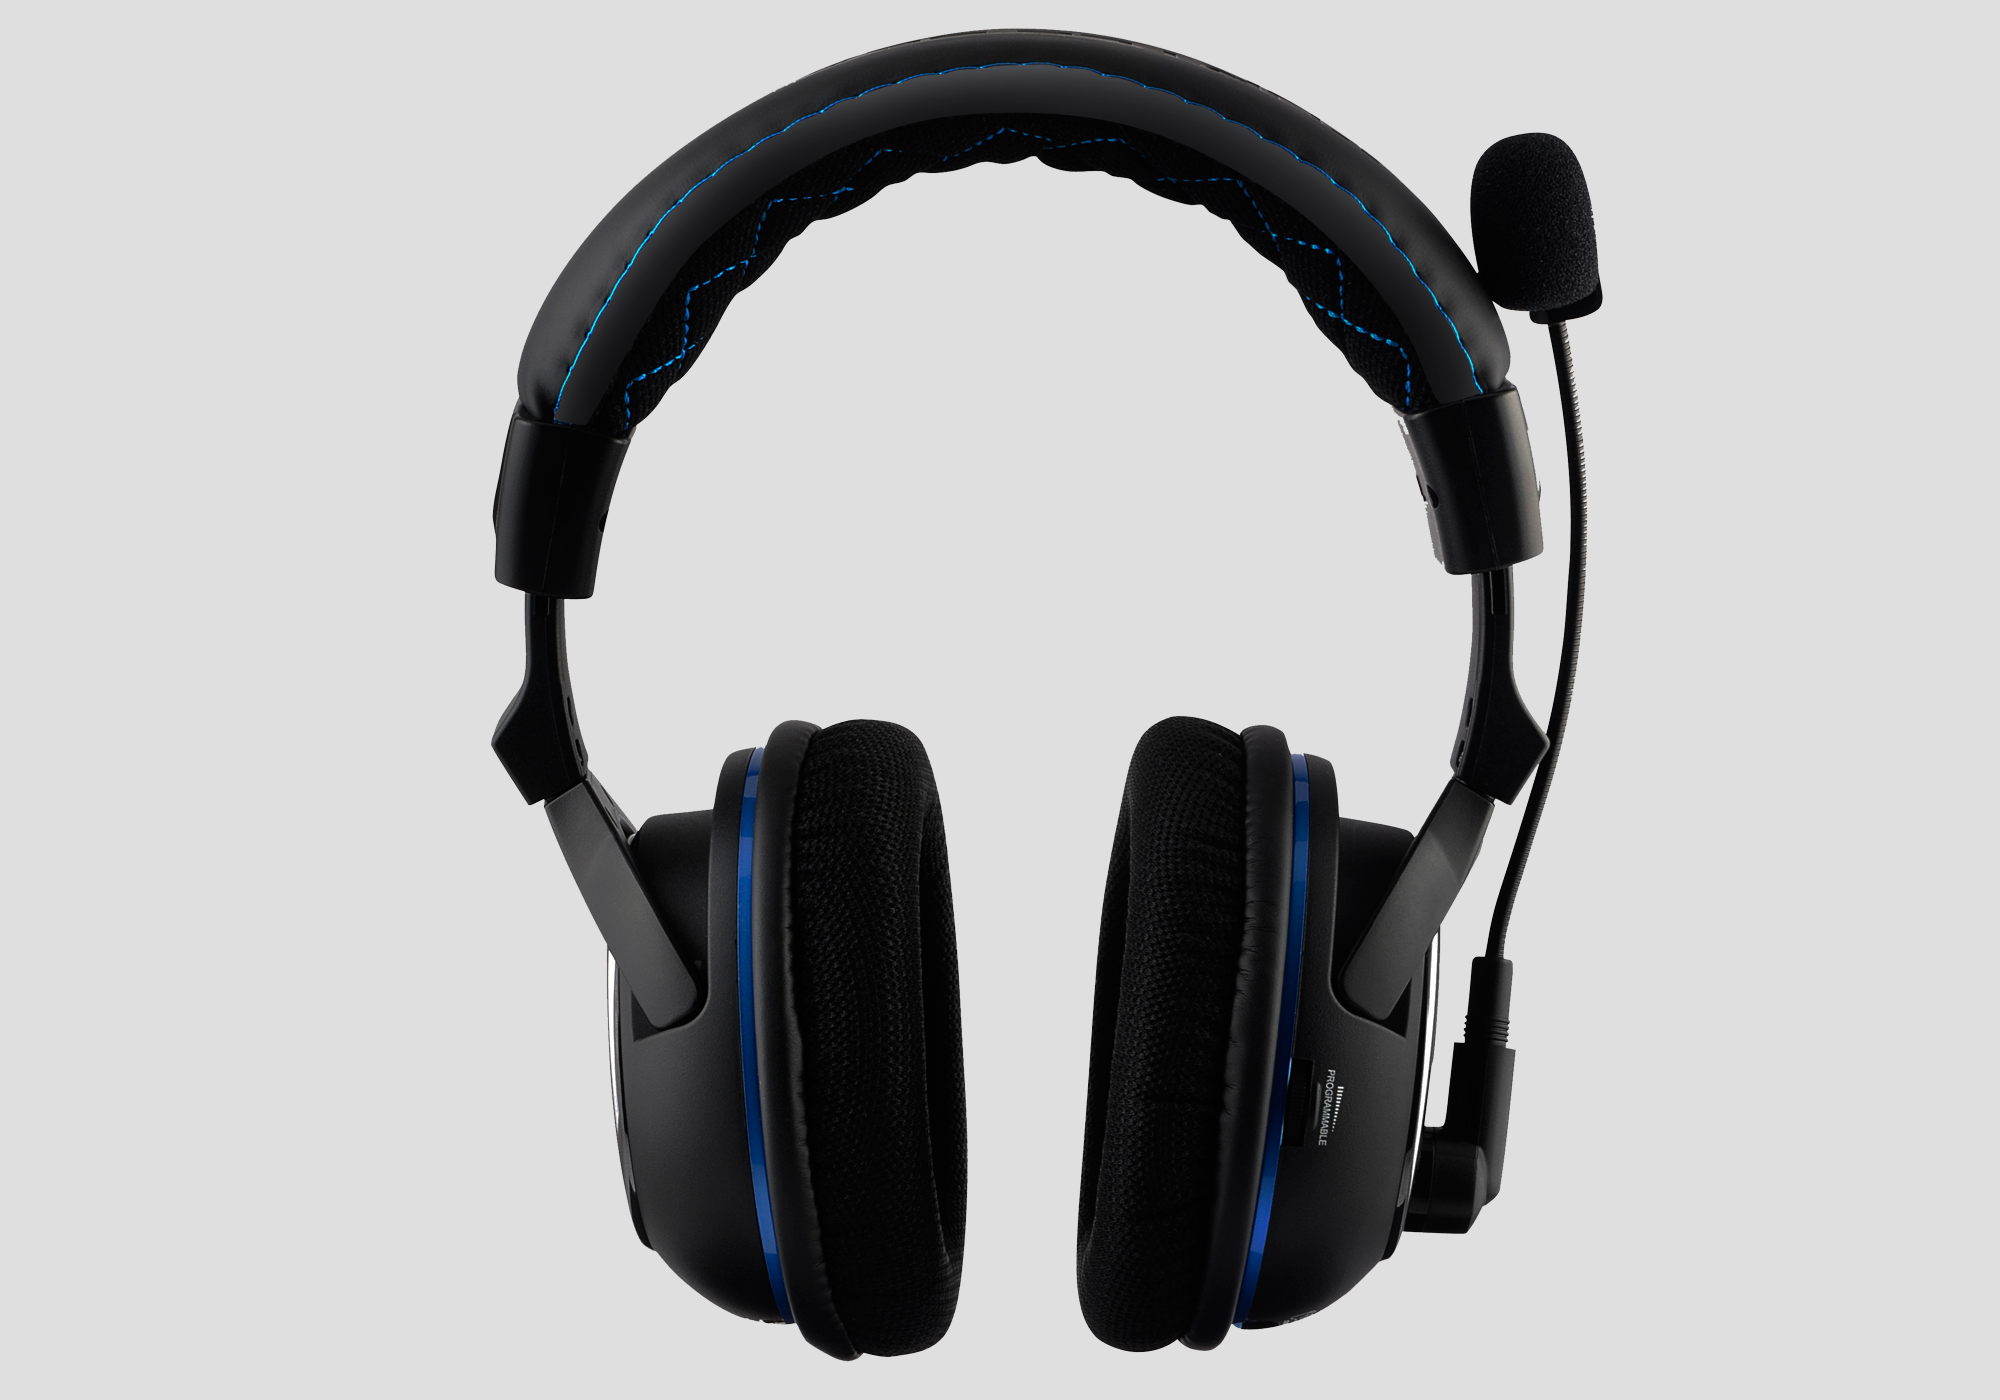 [PS3|PS4|PC|Xbox 360] Turtle Beach Headset Ear Force PX4